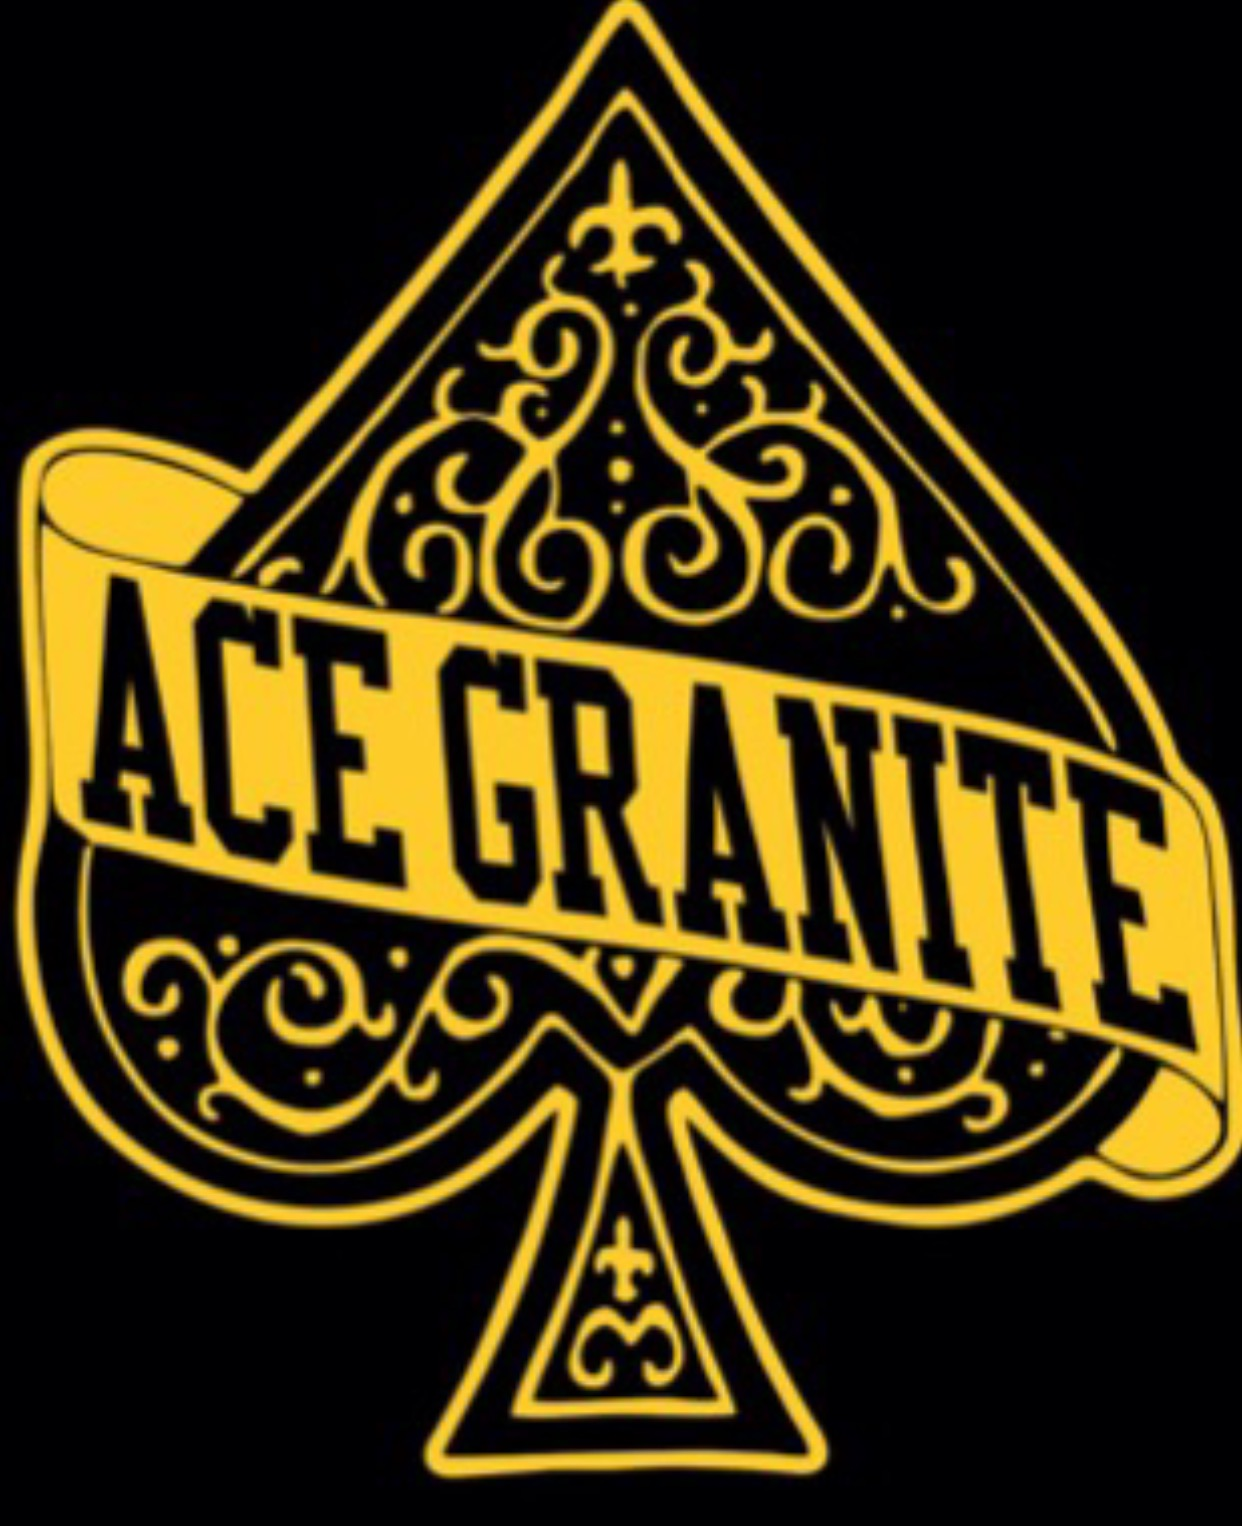 ace granite black and yellow logo of a spade with ace  granite